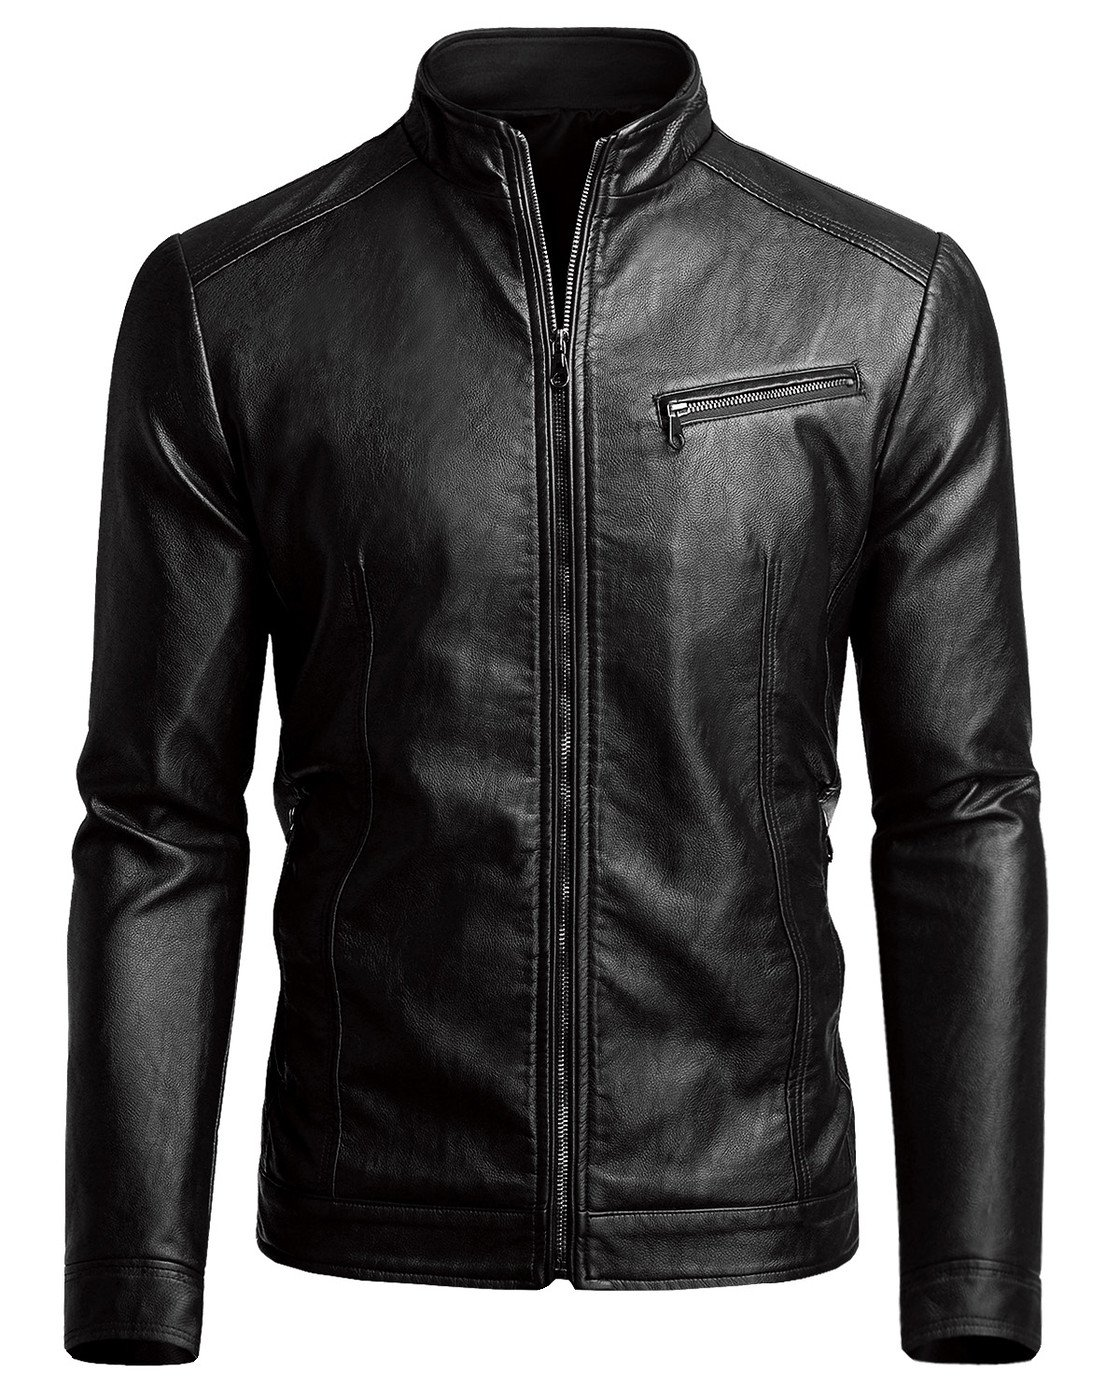 Fairylinks Men's Casual Faux Leather Jacket, Black, Large by Fairylinks